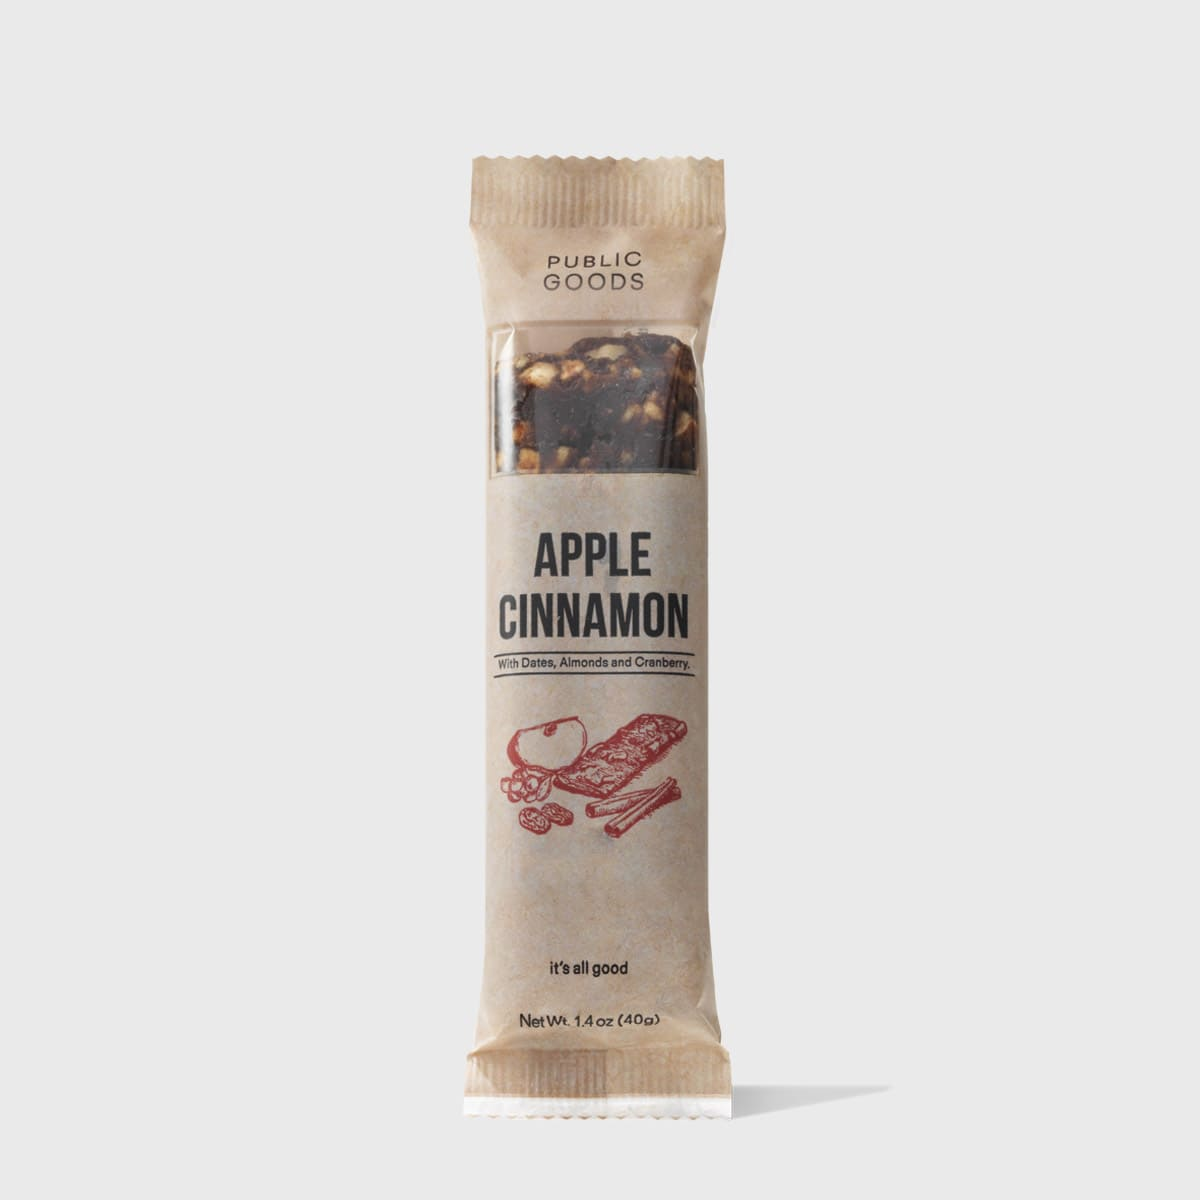 Apple Cinnamon Snack Bar